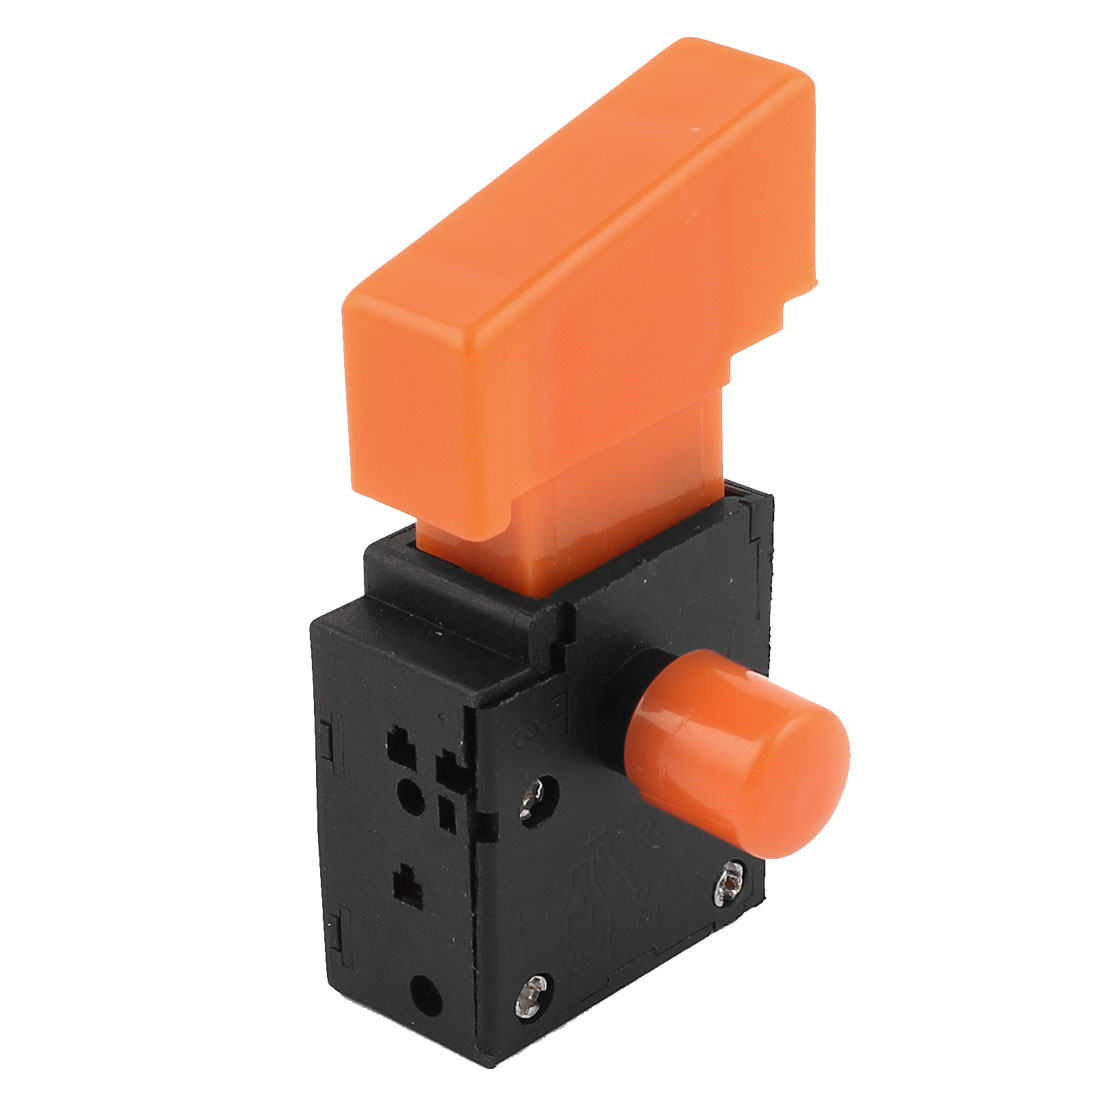 Speed Control SPST NO AC 250V 4A Trigger Switch for Electric Drill Tool